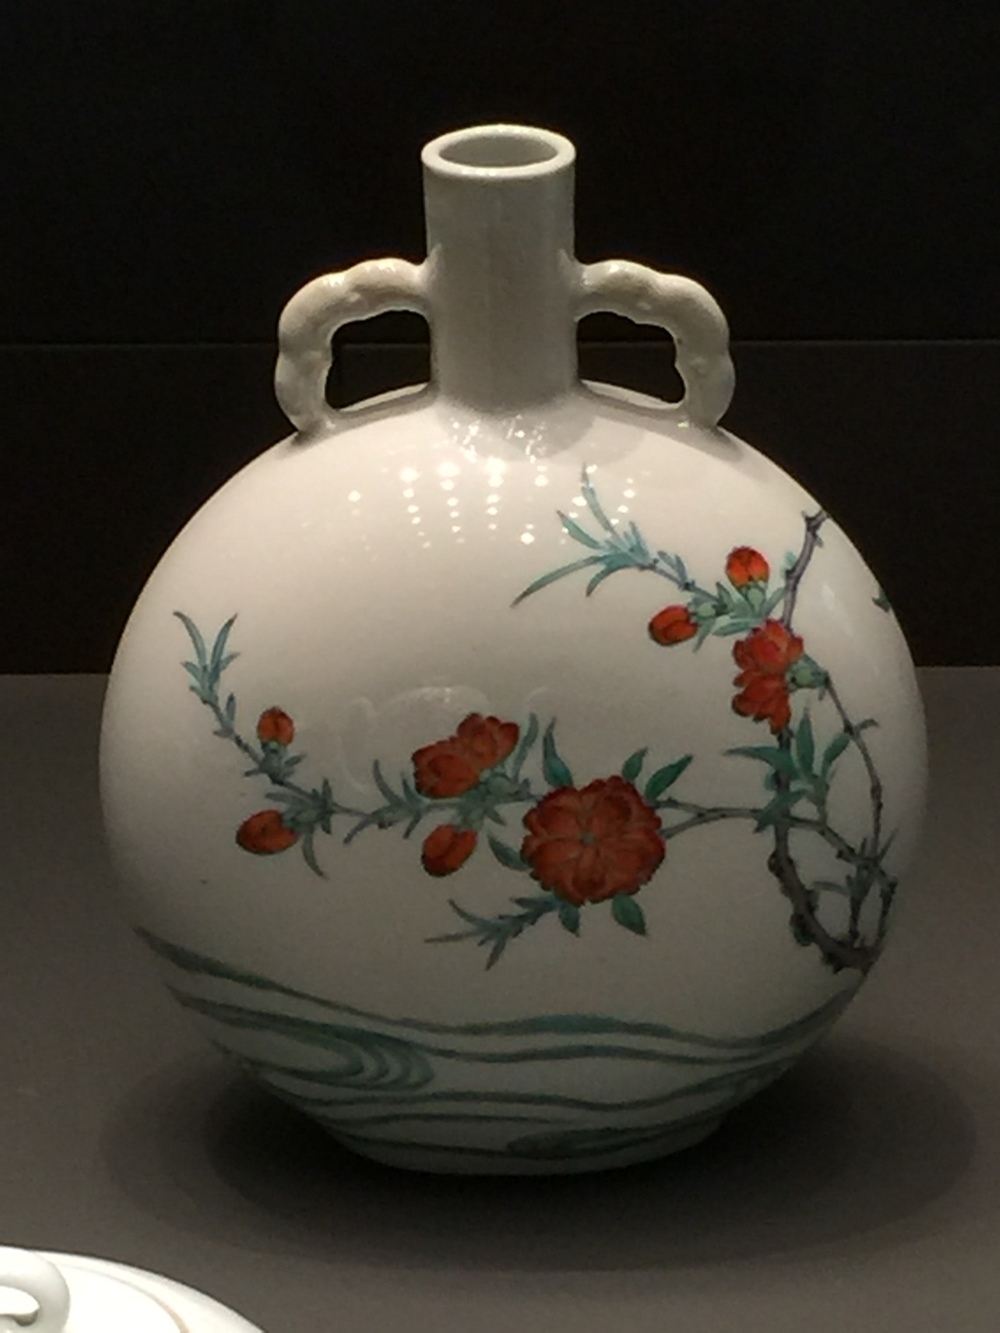 Chinese-Porcelain-British-Museum-Percival-David-jessewaugh.com-112.jpg